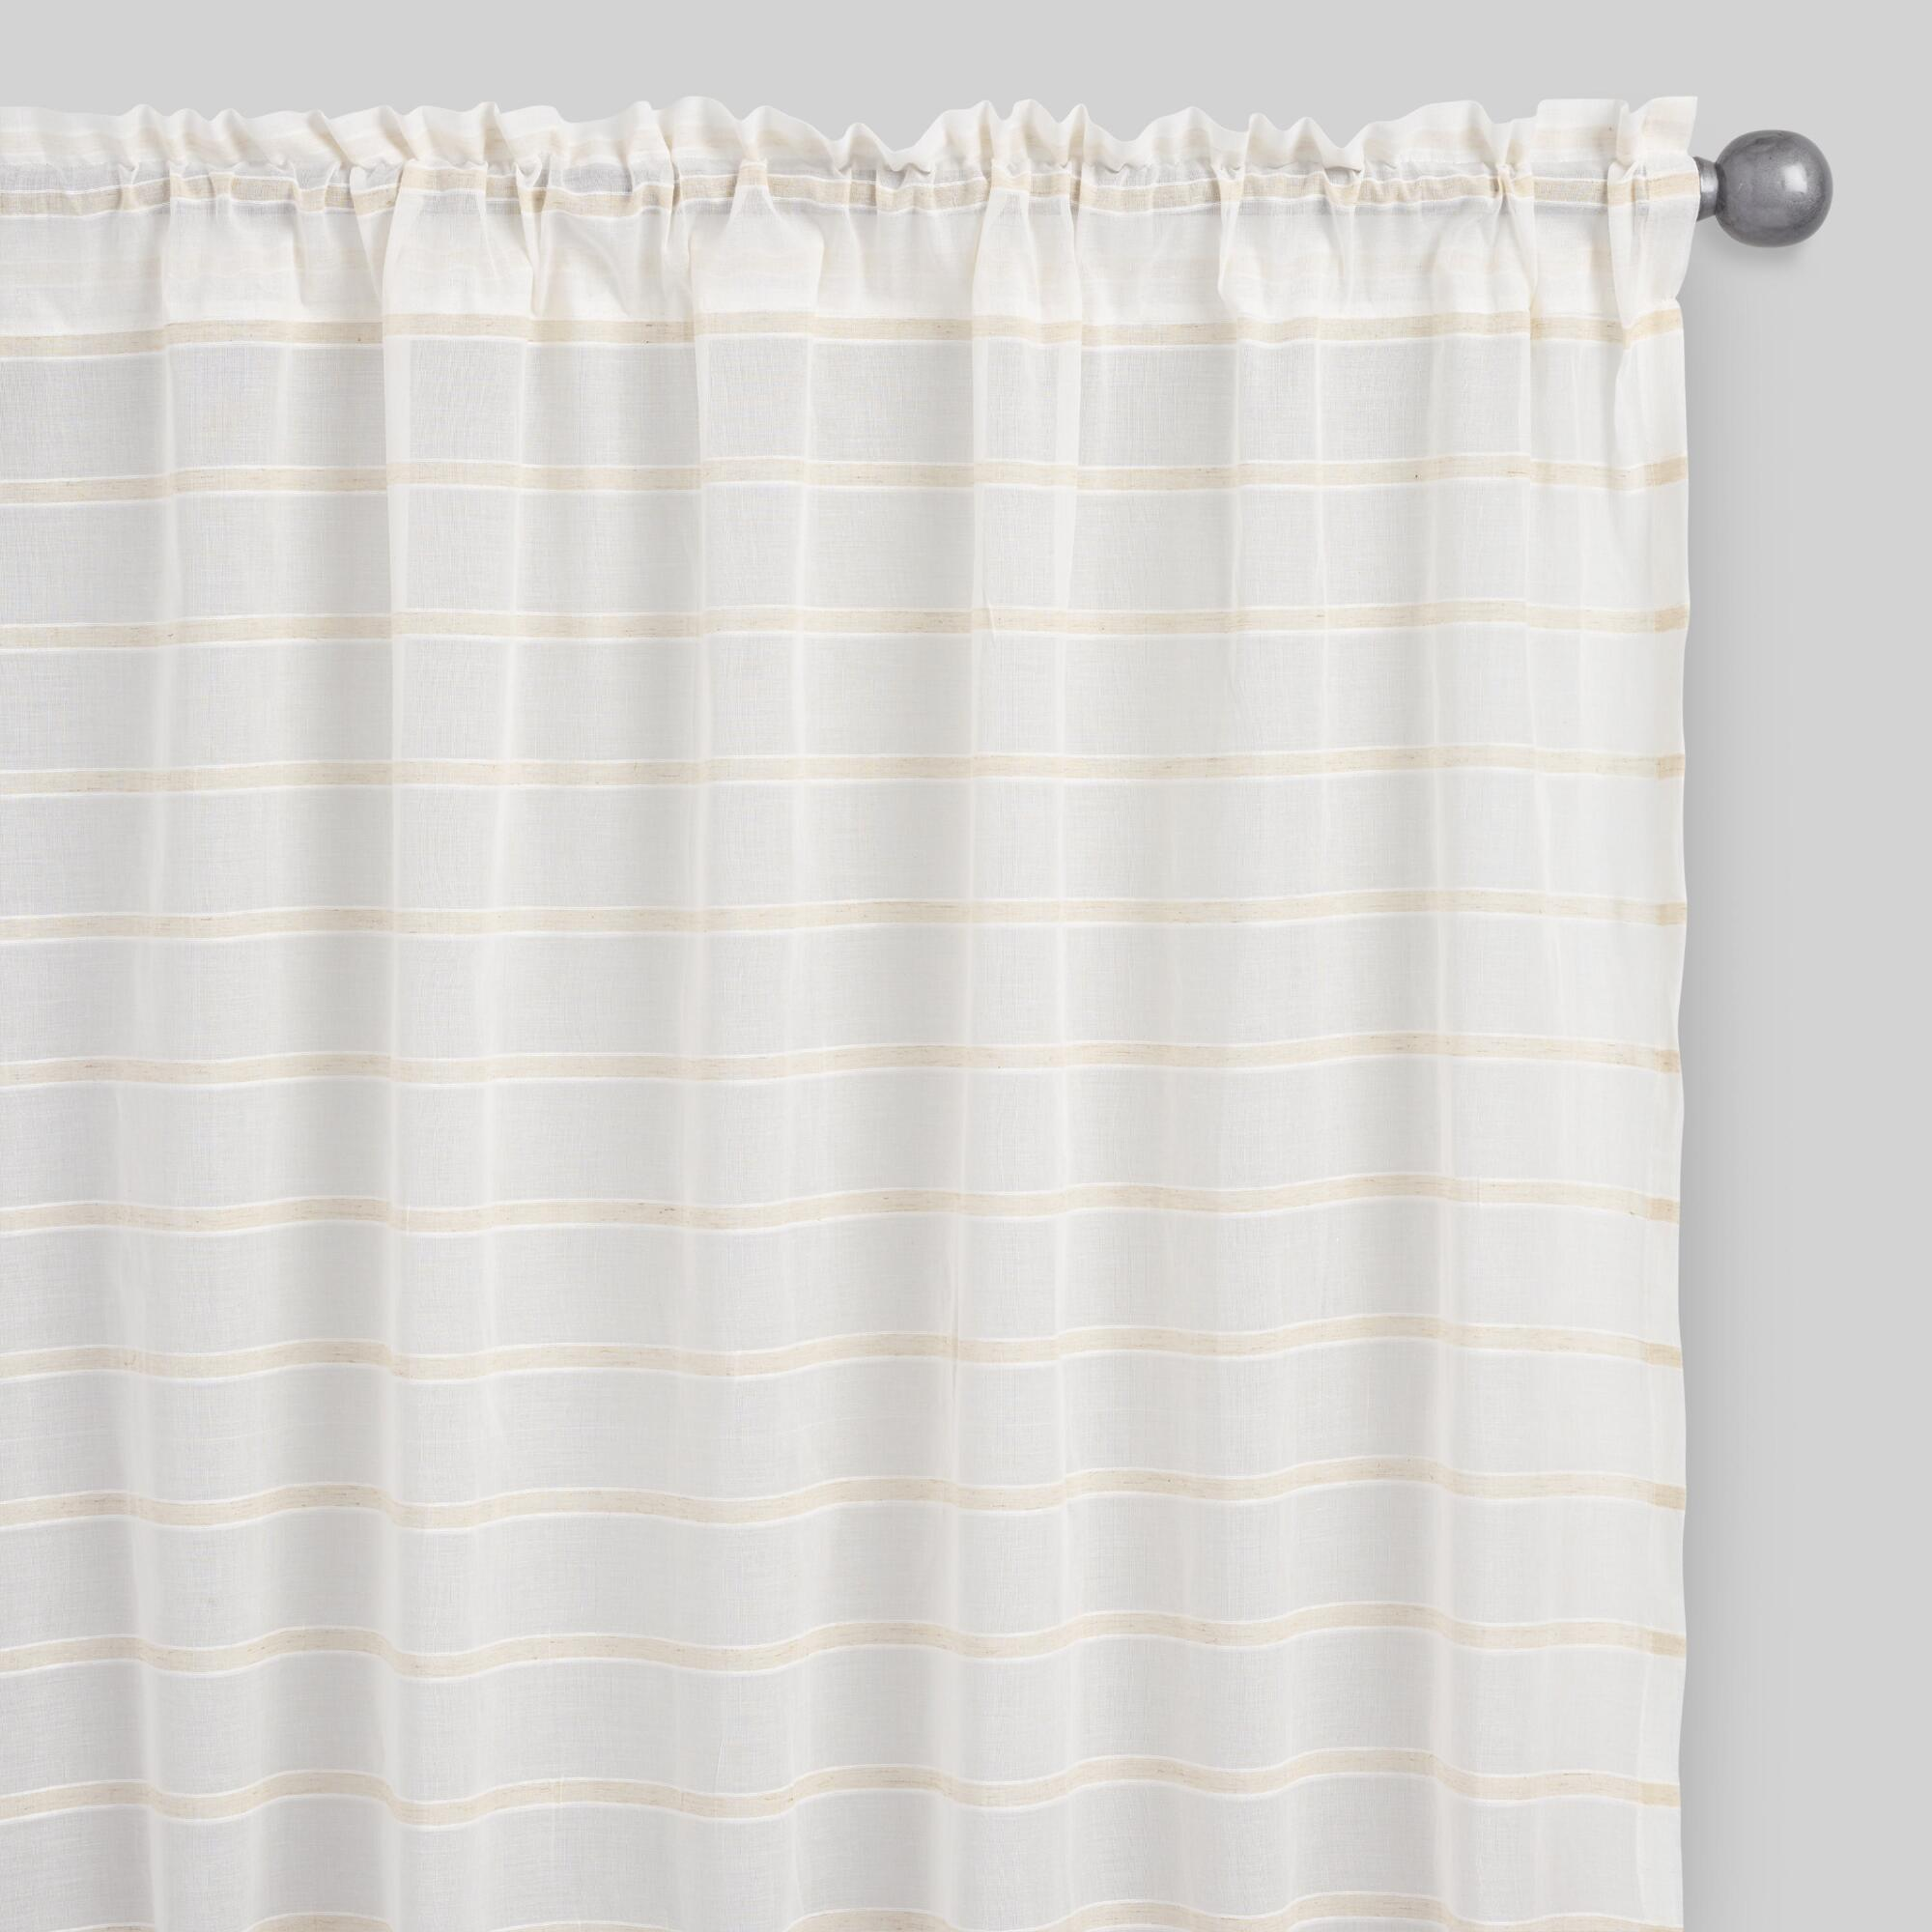 Dobby Stripe Sheer Cotton Curtains Set of 2